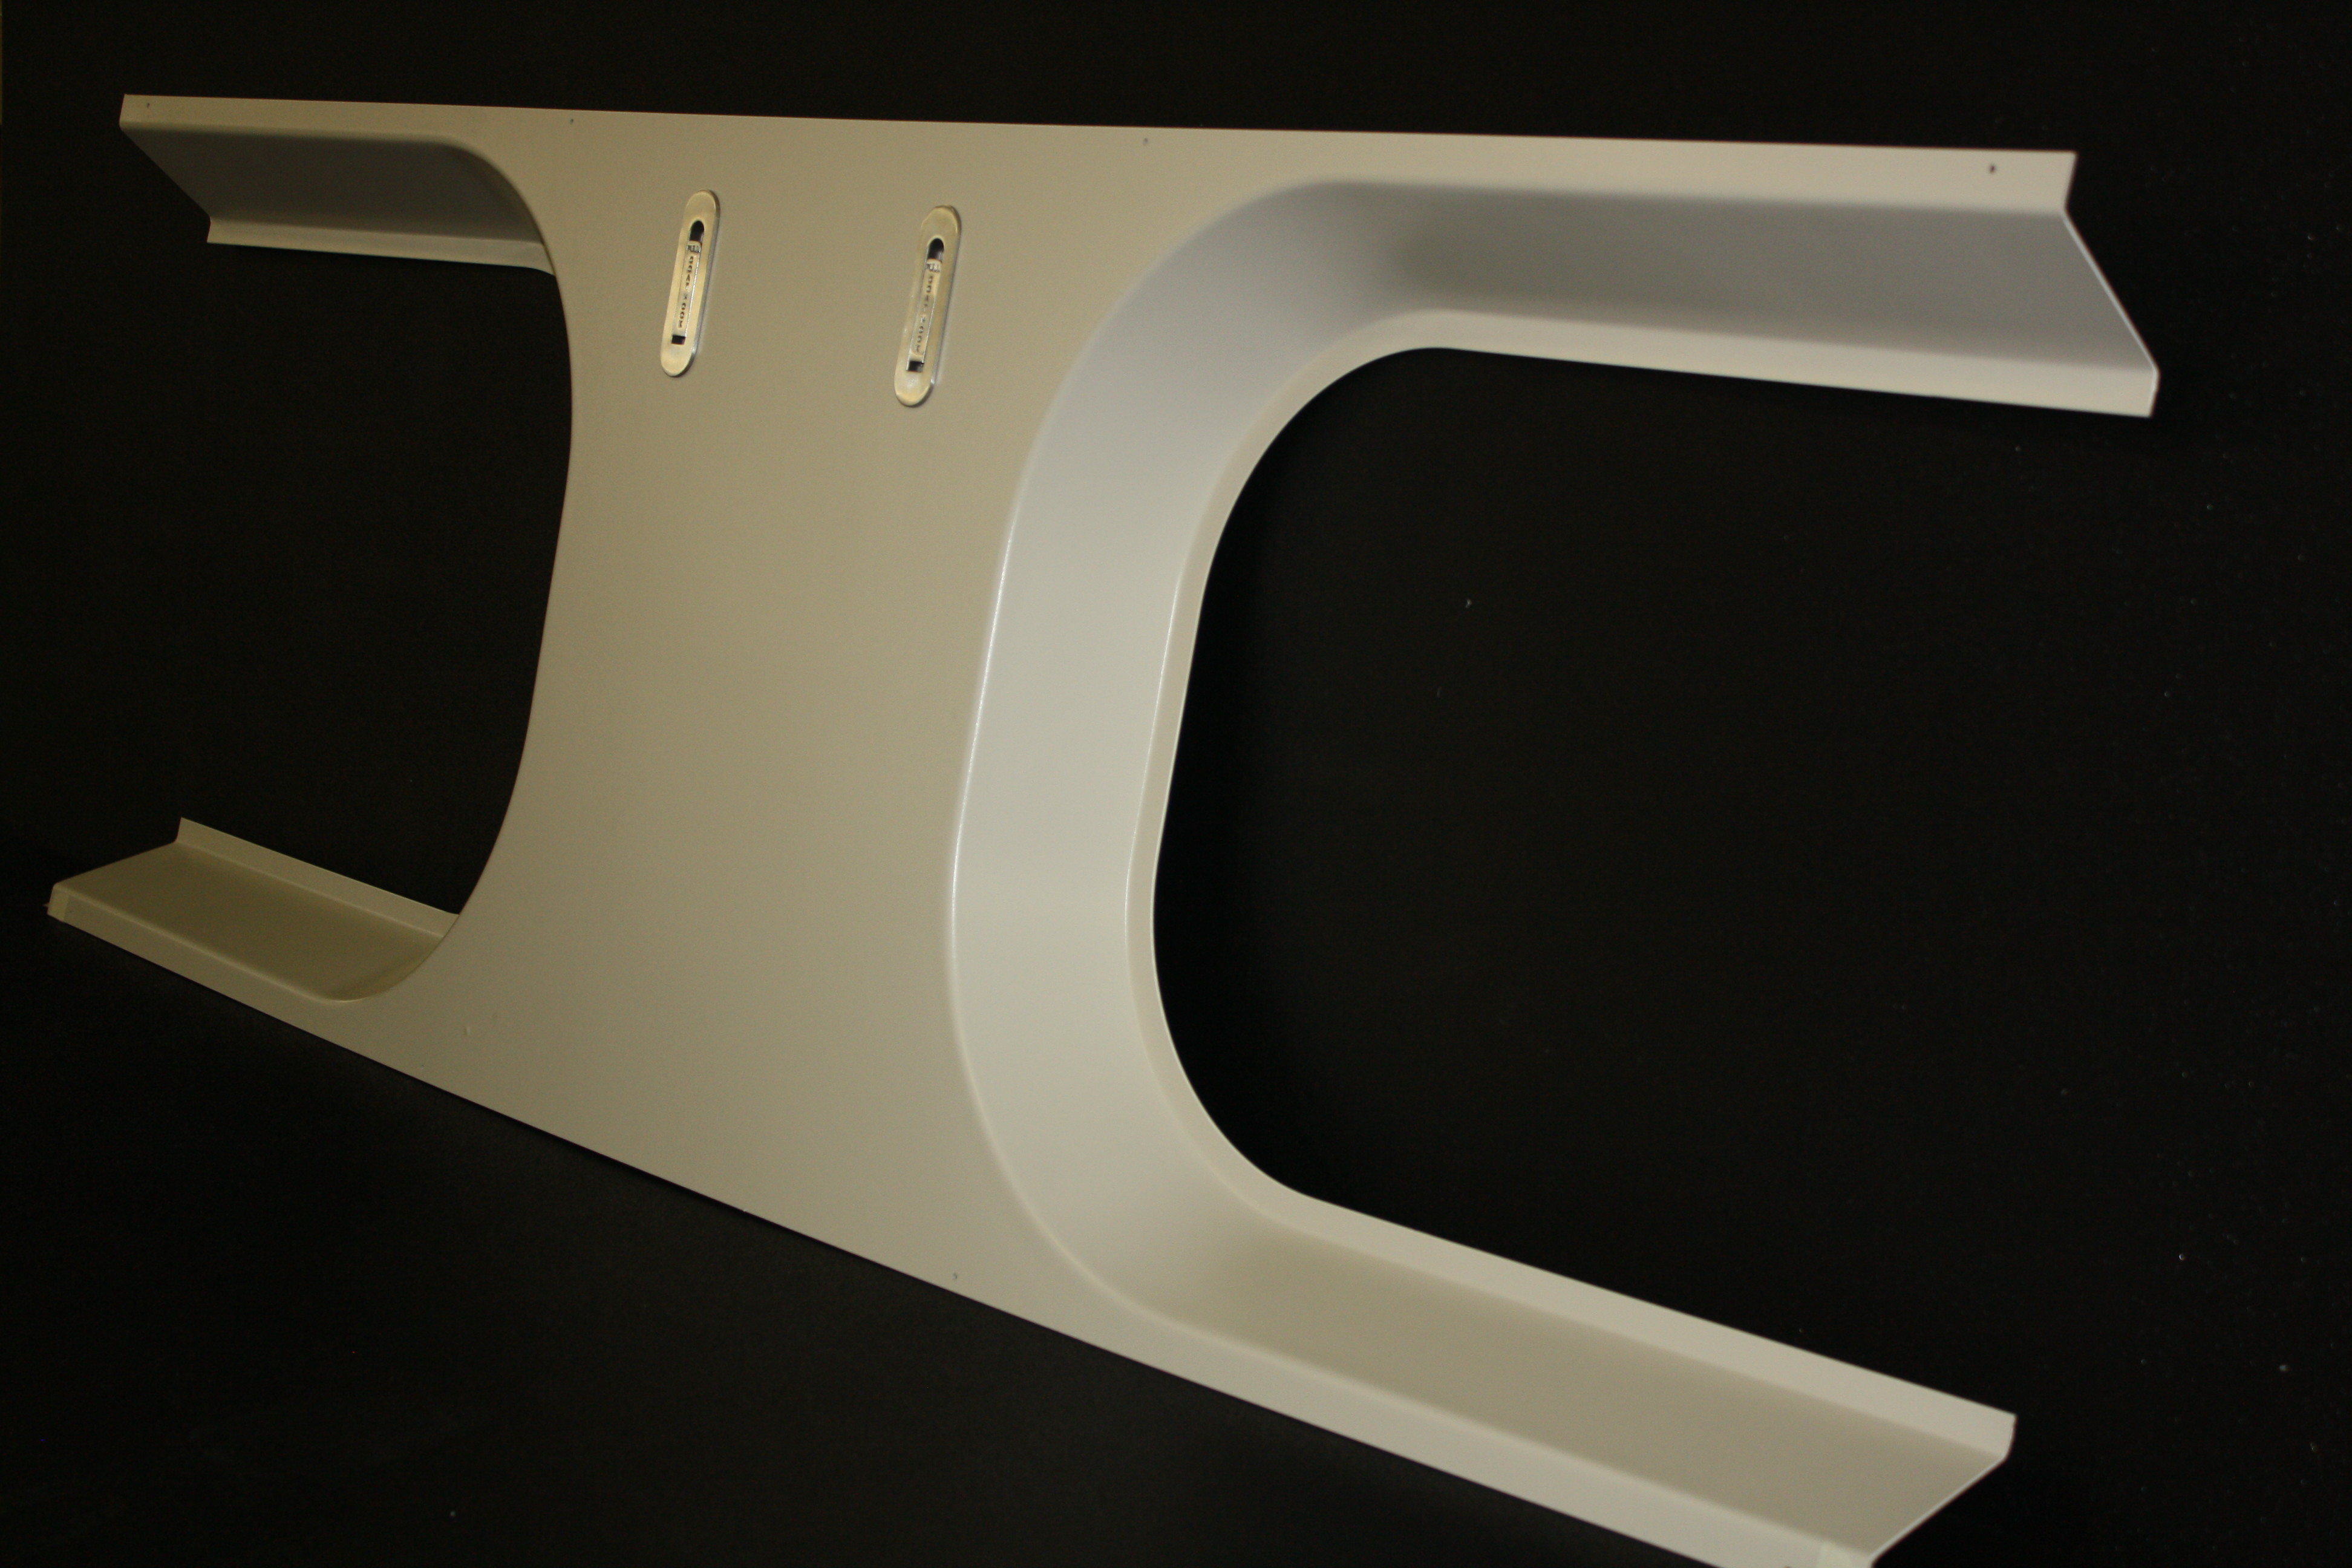 The components pictured here, and above, are window masks being produced for Chicago's Metra commuter rail system.